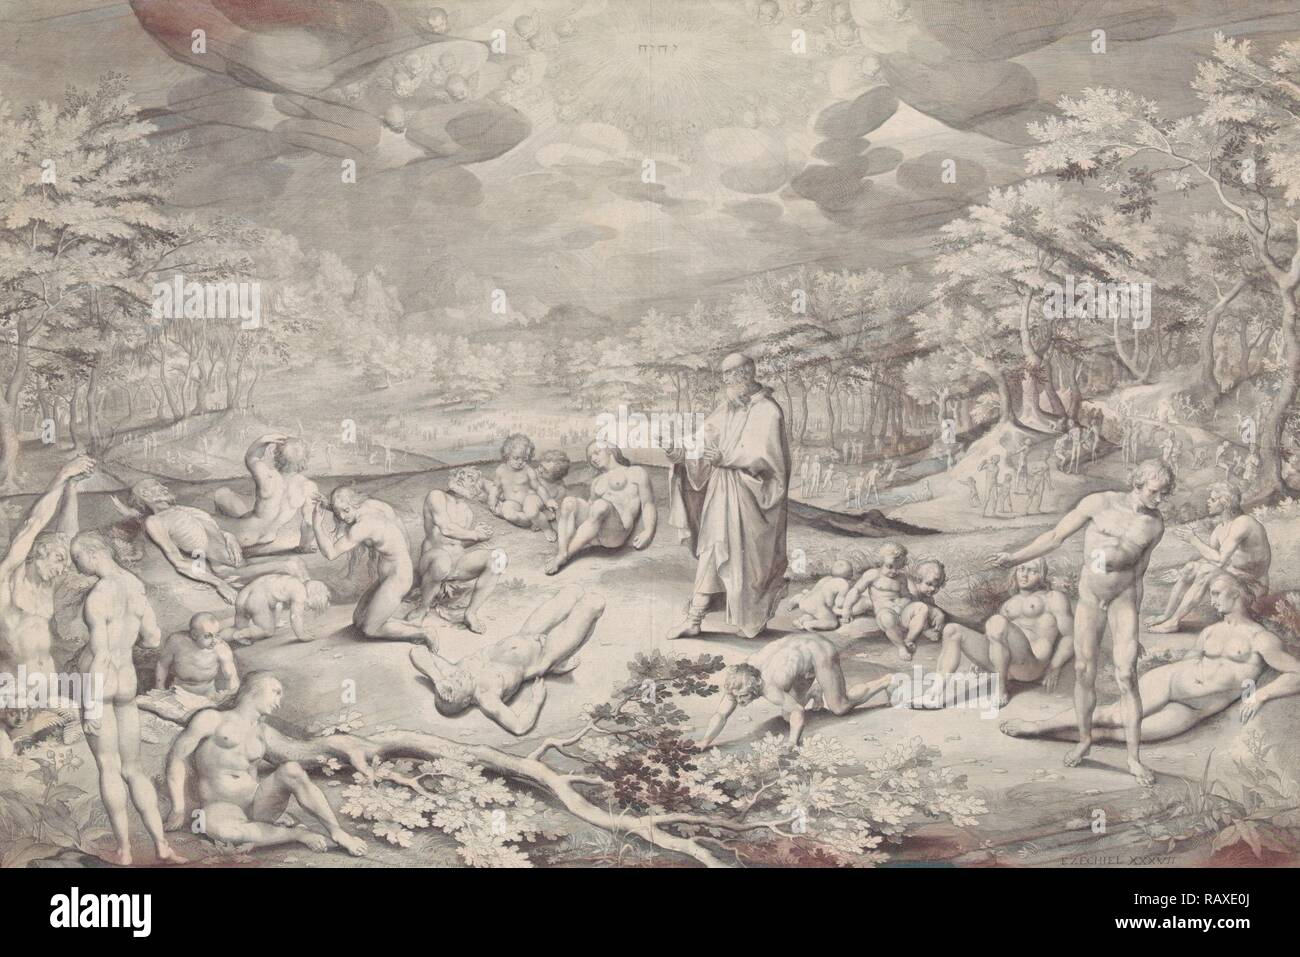 Vision of Ezekiel across the valley of bones, Nicolaes de Bruyn, 1606. Reimagined by Gibon. Classic art with a modern reimagined - Stock Image